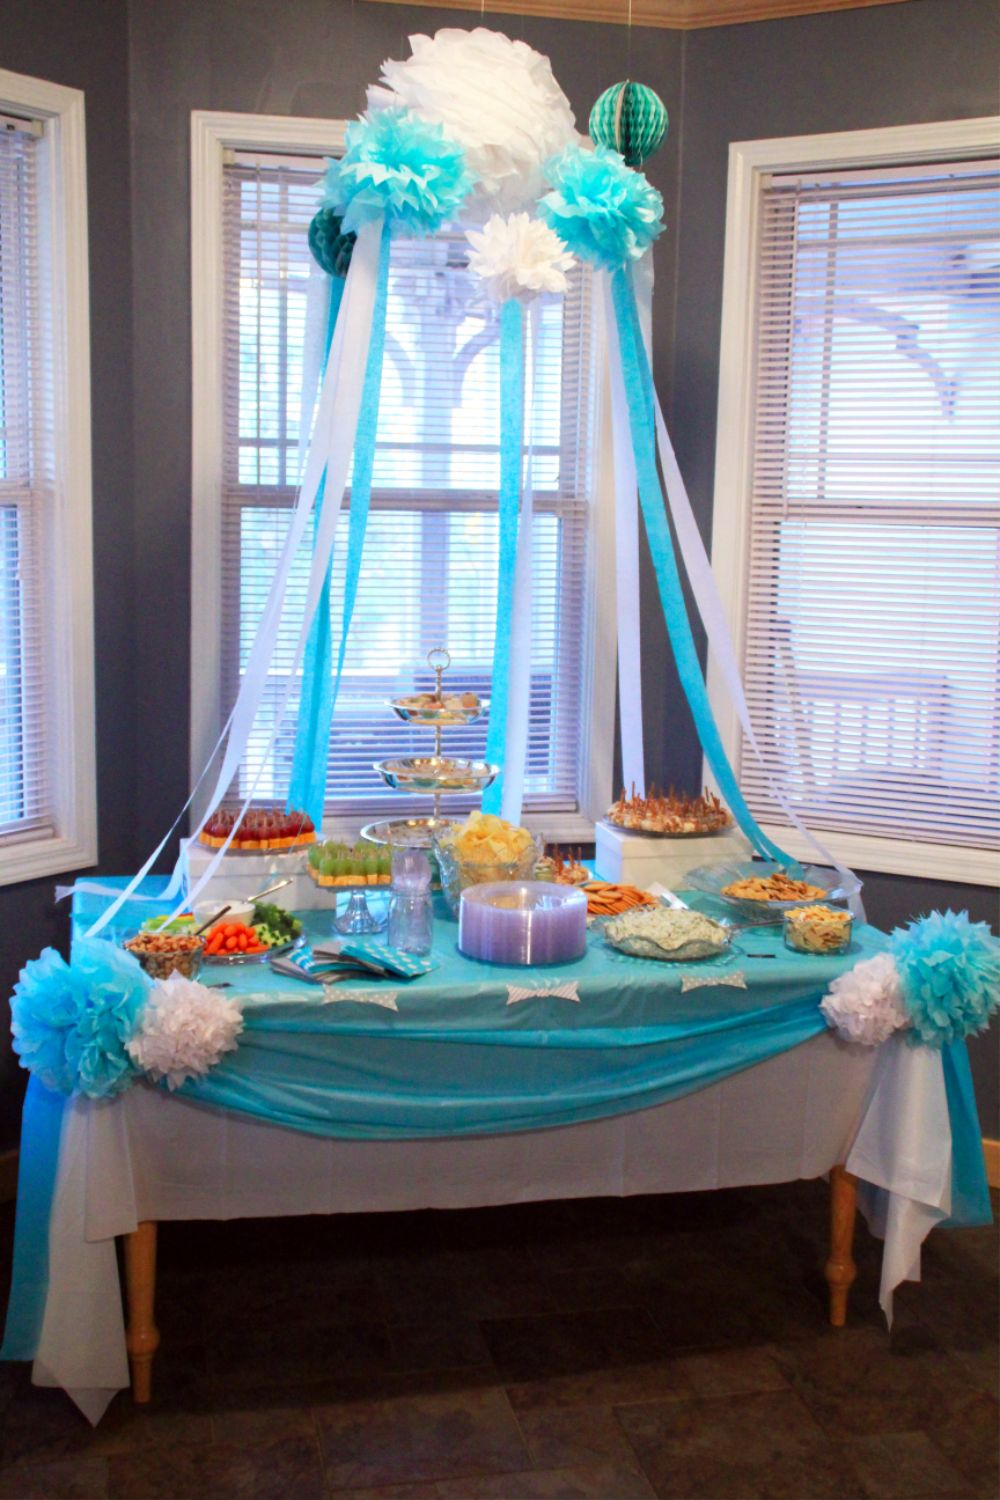 Baby shower decoration ideas southern couture for Baby shower decoration ideas pinterest